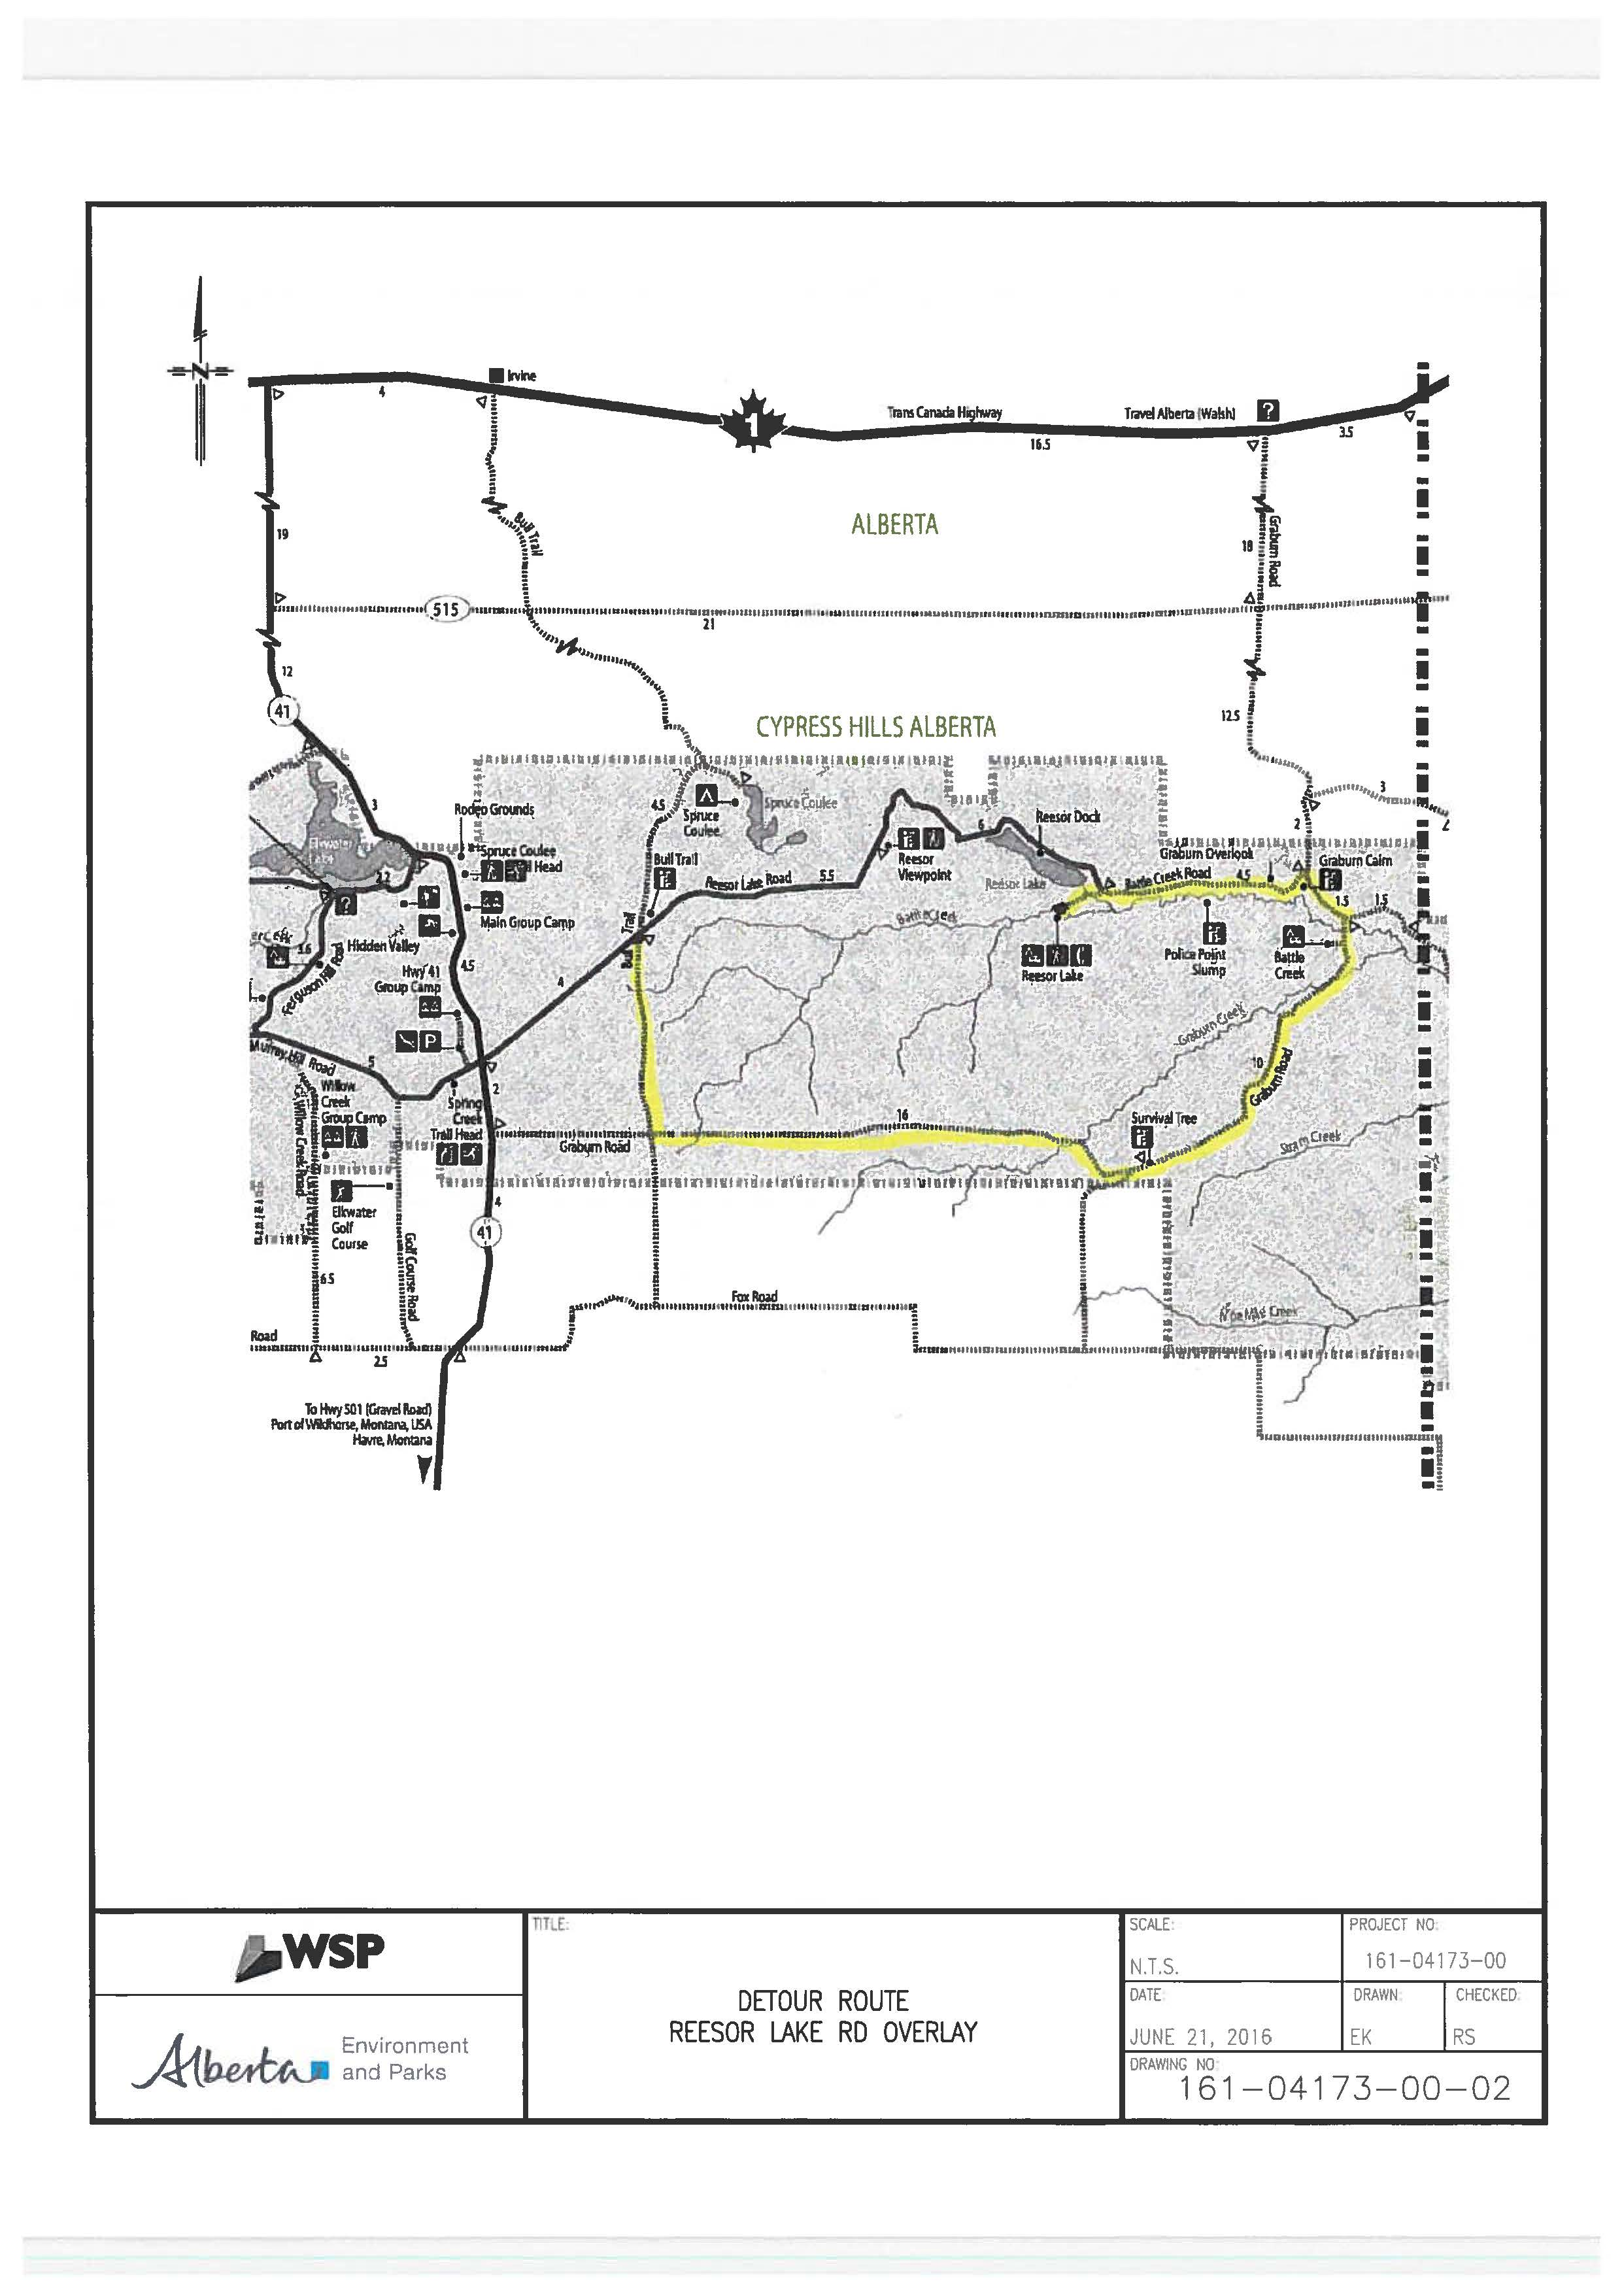 Reesor Lake Road Paving Repairs and Overlay: Sept 6 - Oct 31